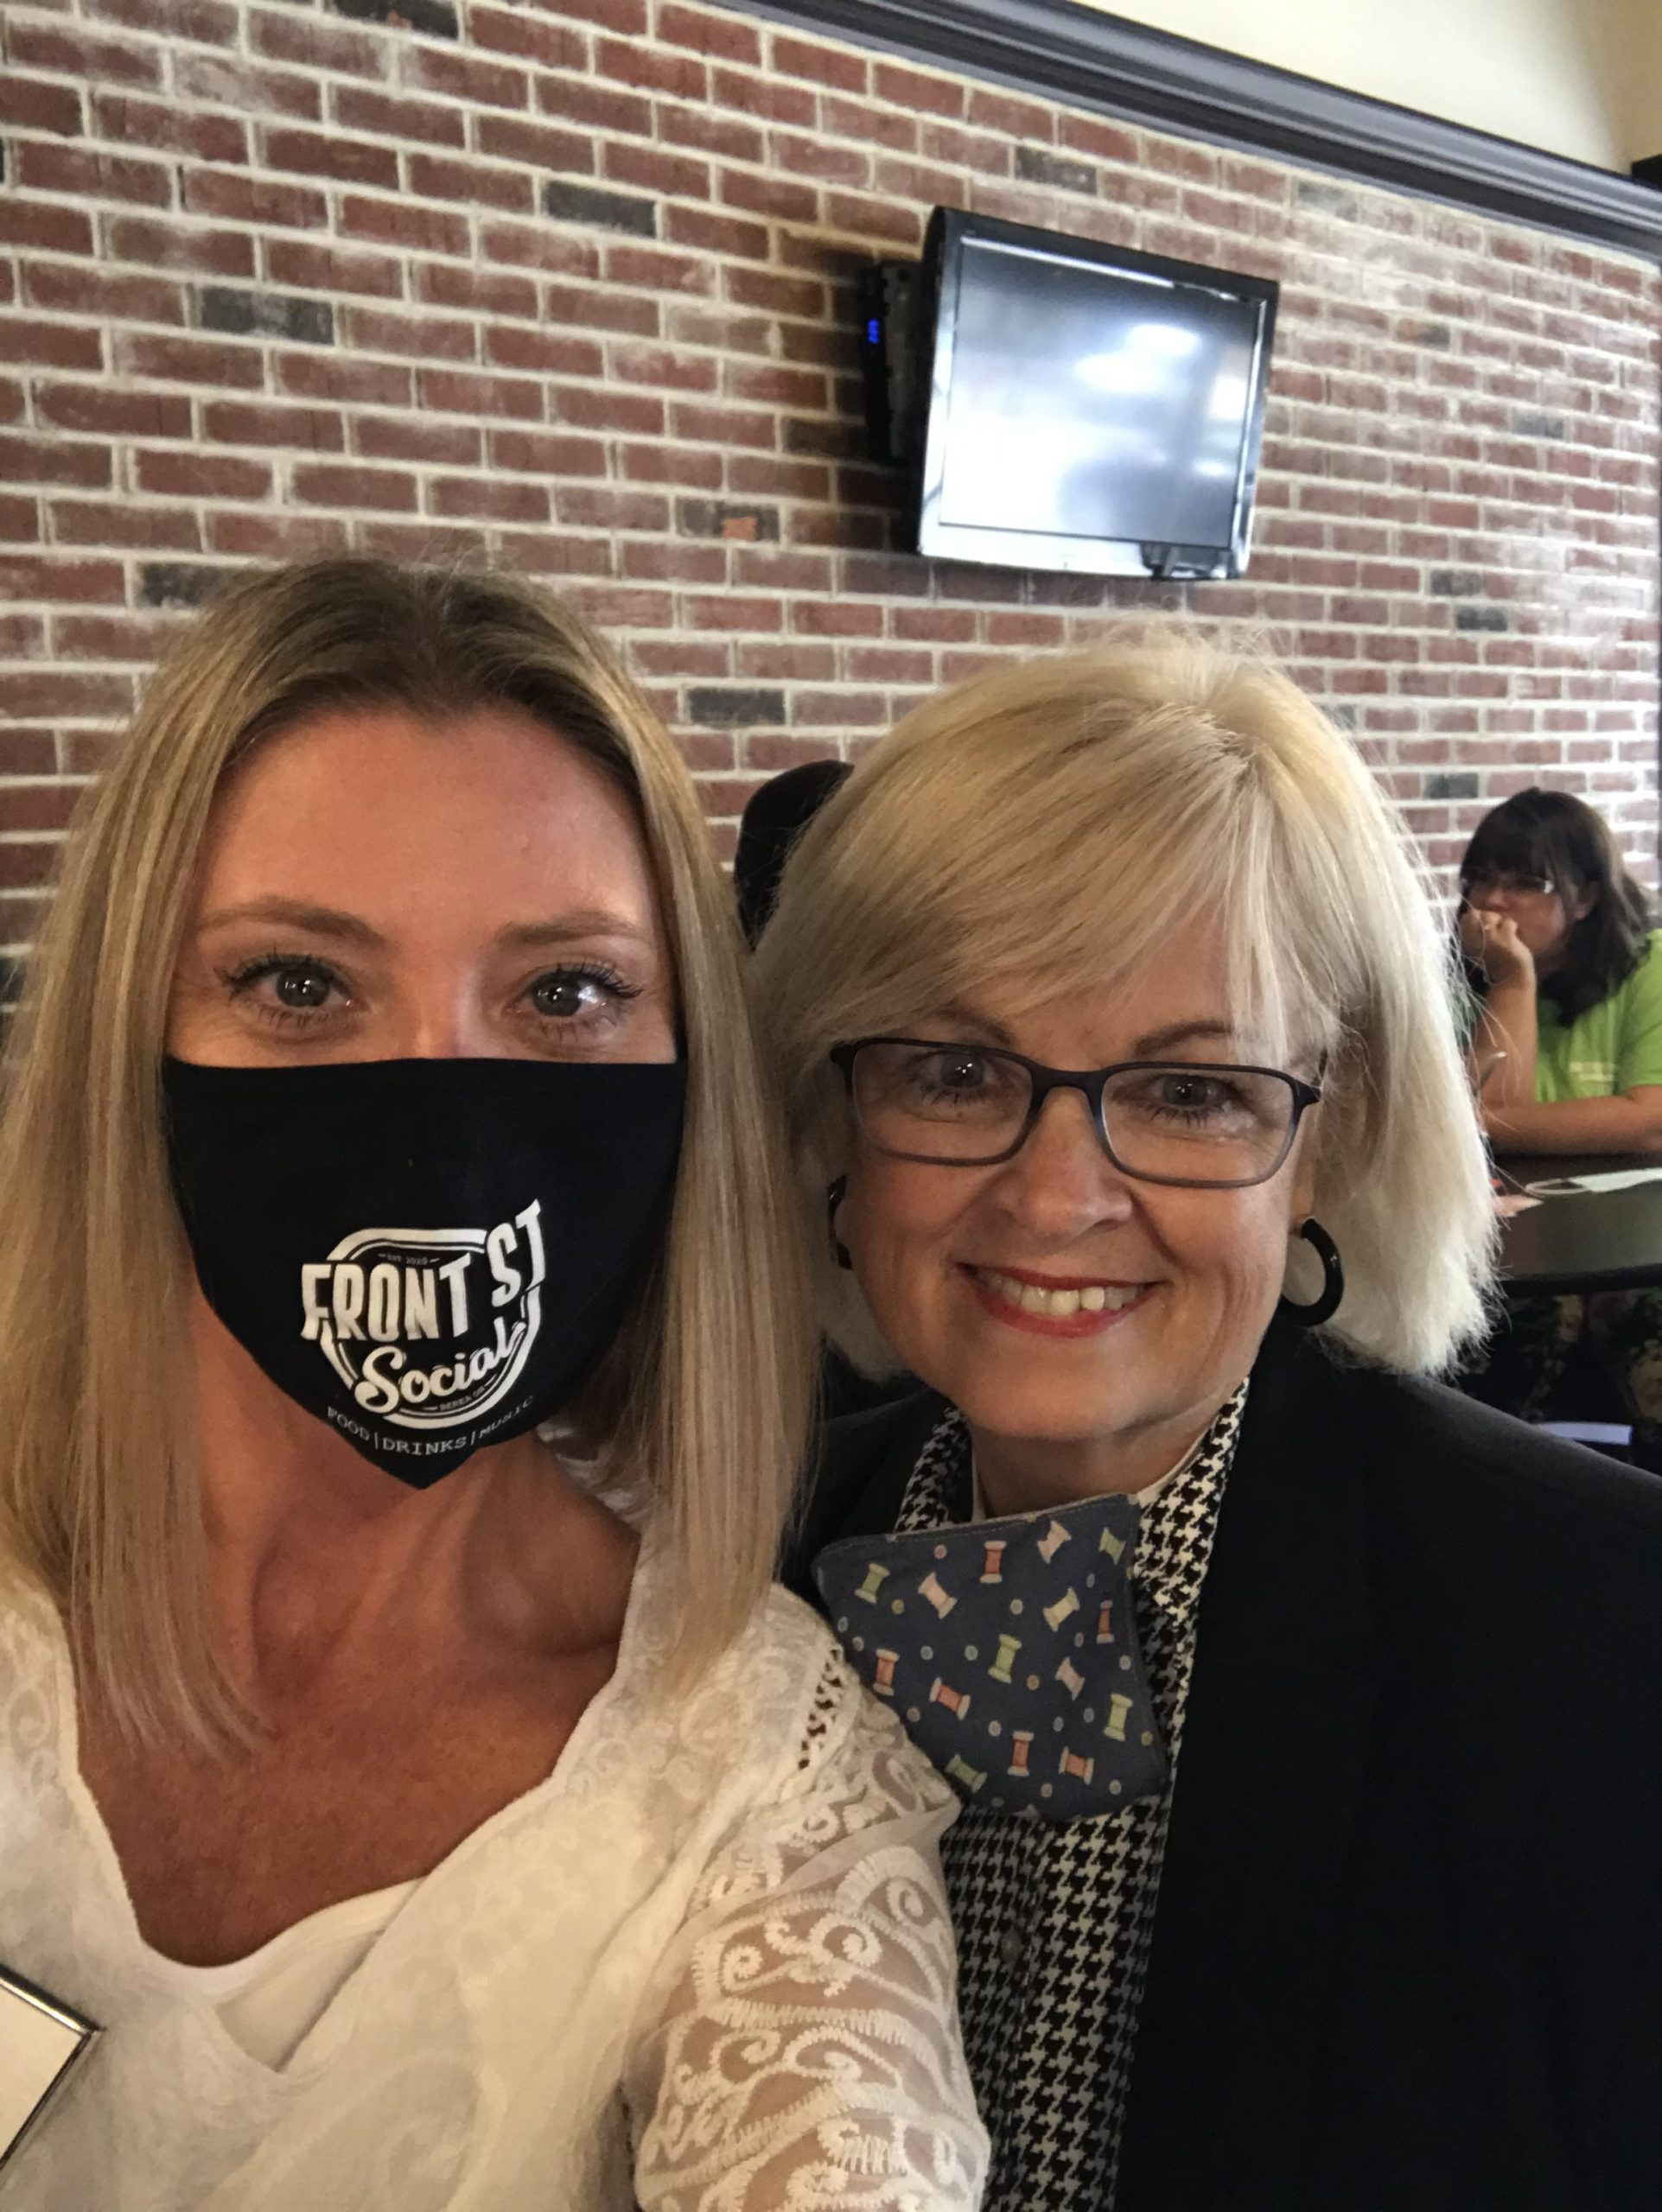 What a great afternoon networking with Berea area professionals at the new Front St Social! Make sure to check out this venue for amazing drinks, food, and music!